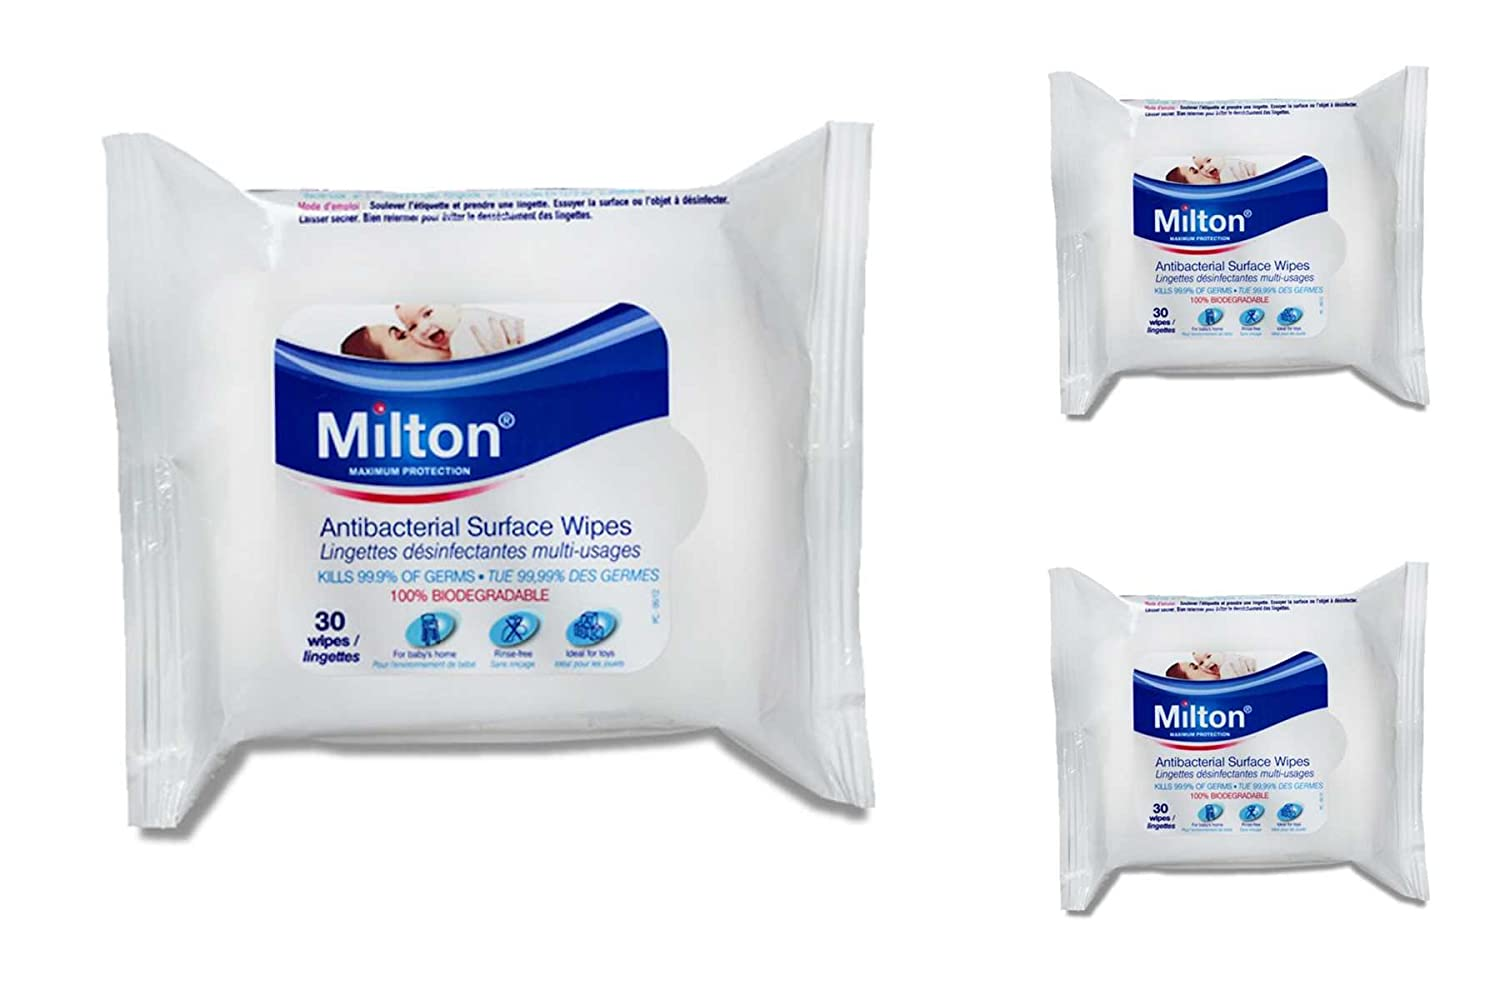 Milton Baby Antibacterial Surface Wipes 3 x 30Pk 90 Wipes